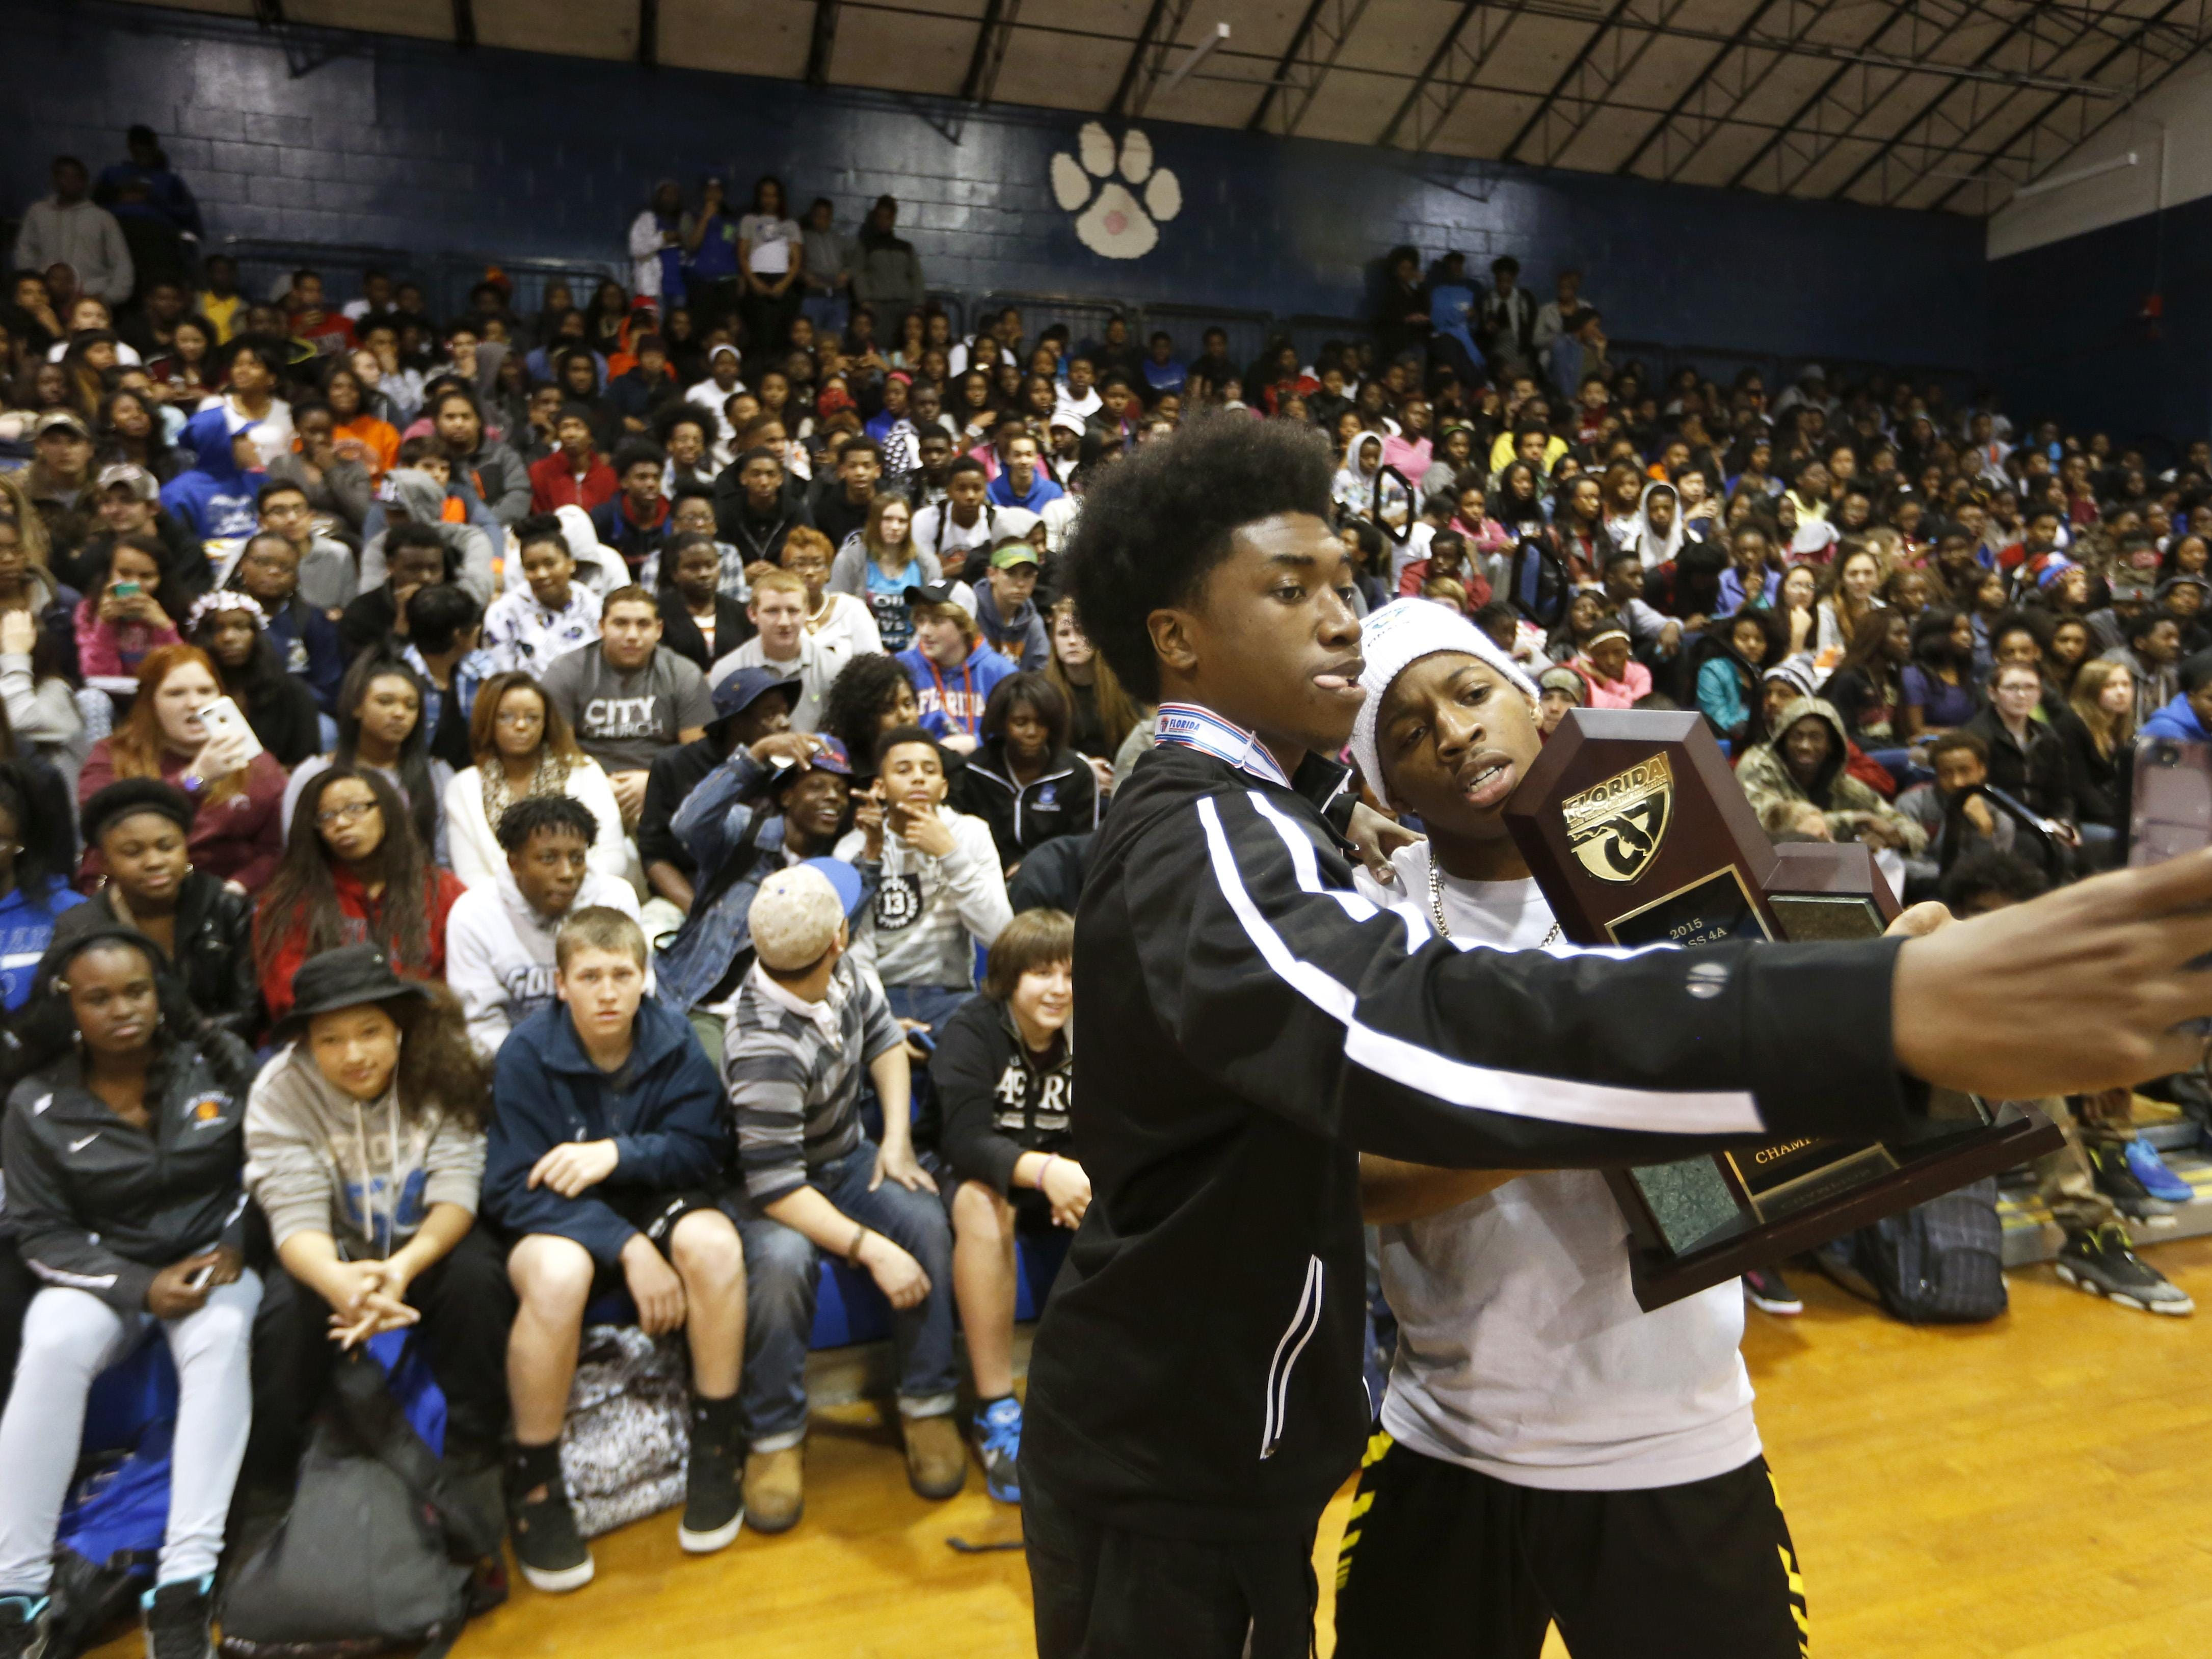 Jordan Gaskins, left, and BJ Gant-McClenton take a selfie with the Godgy High School boy's basketball state championship trophy during their celebration at the school on Friday.